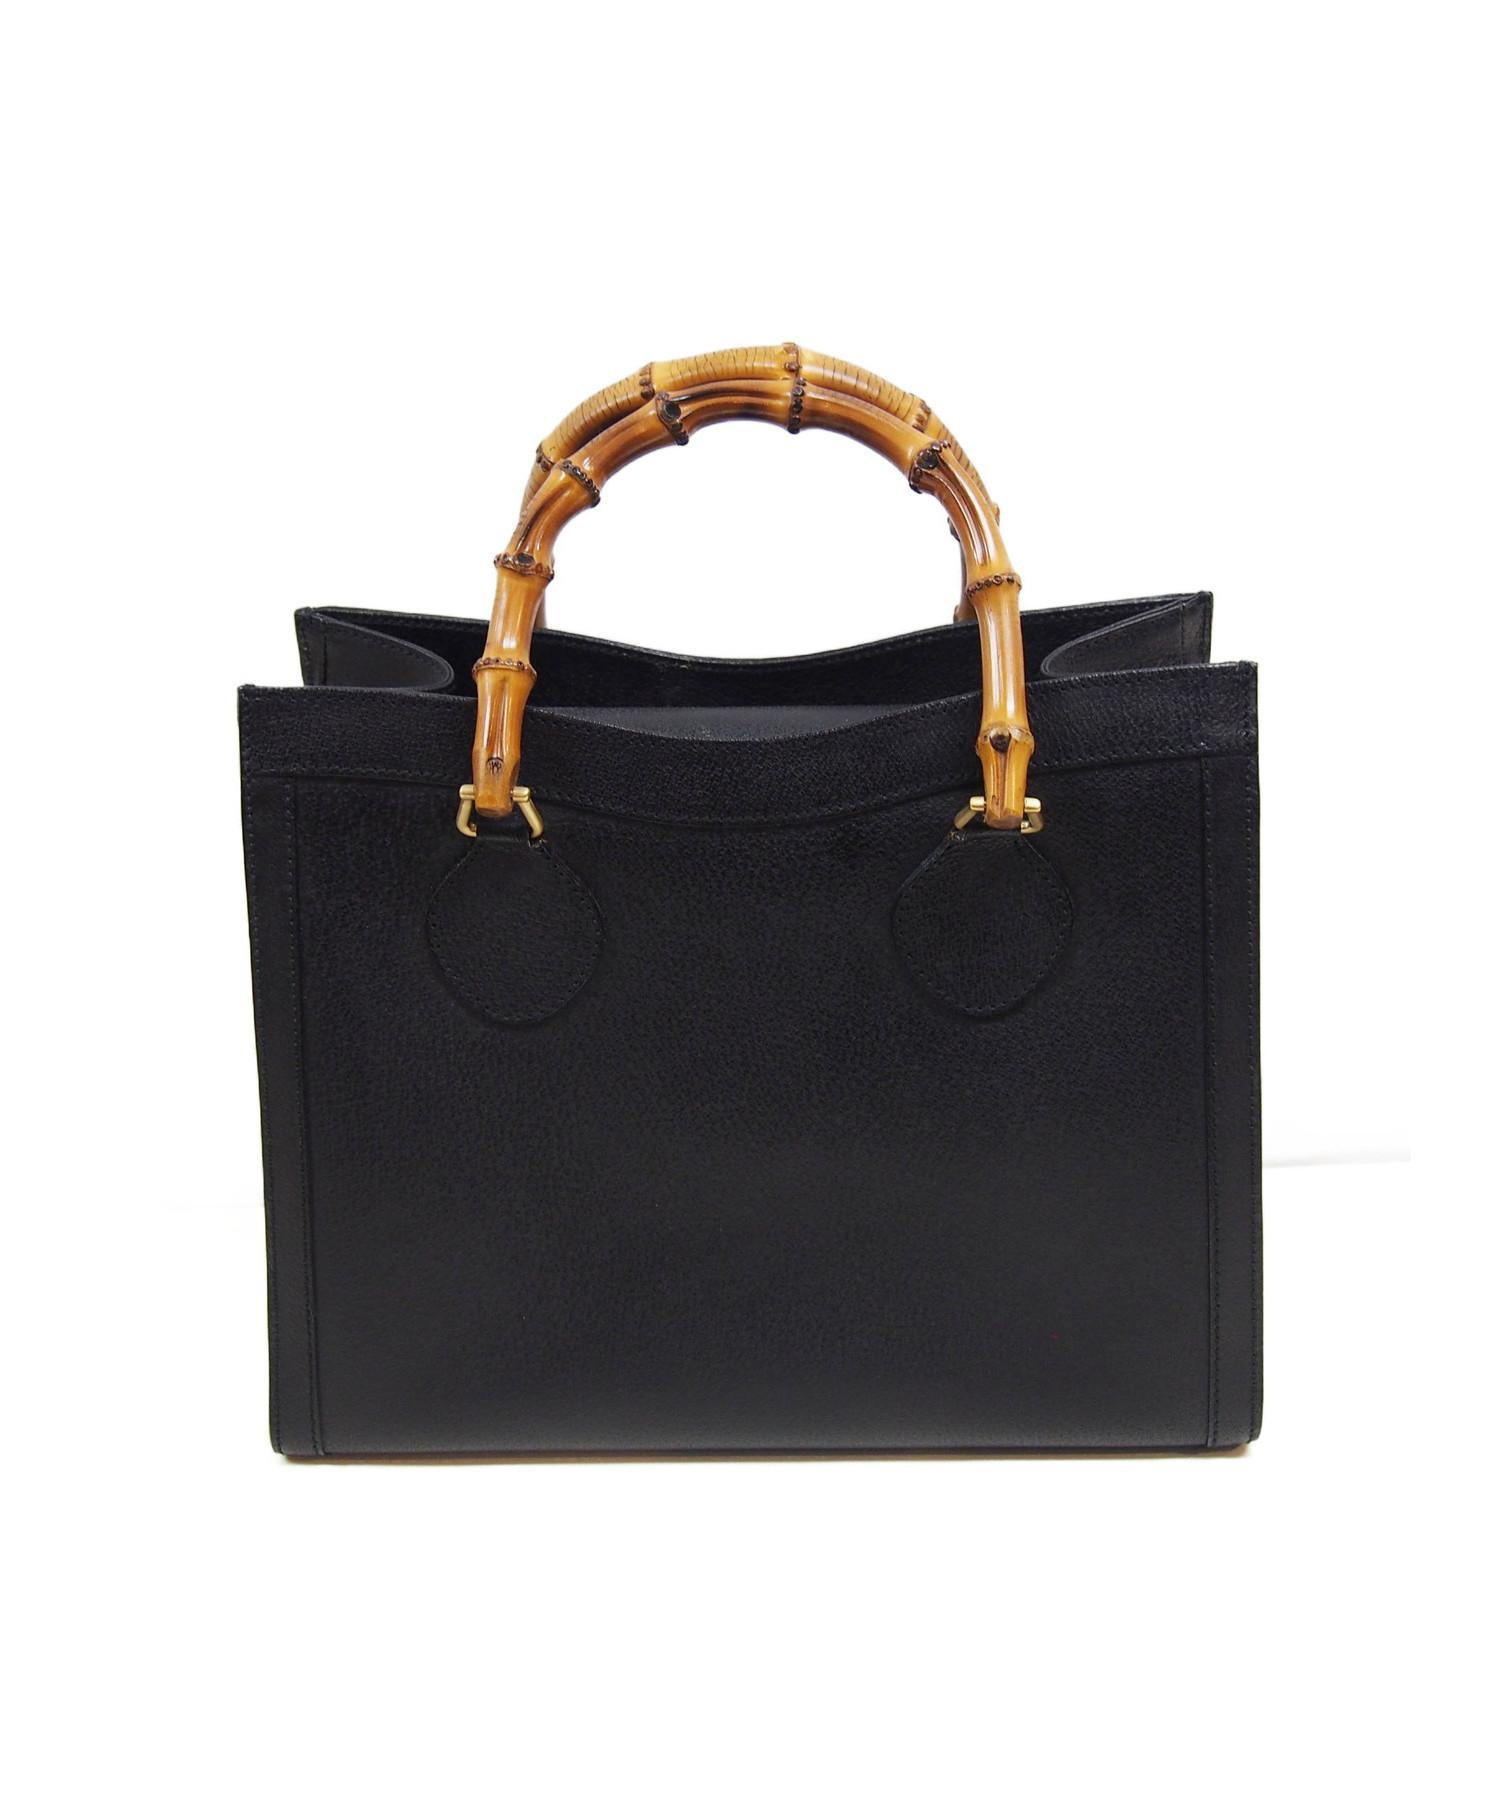 info for 00227 d0275 中古・古着通販】GUCCI (グッチ) バンブーハンドバッグ OLD ...